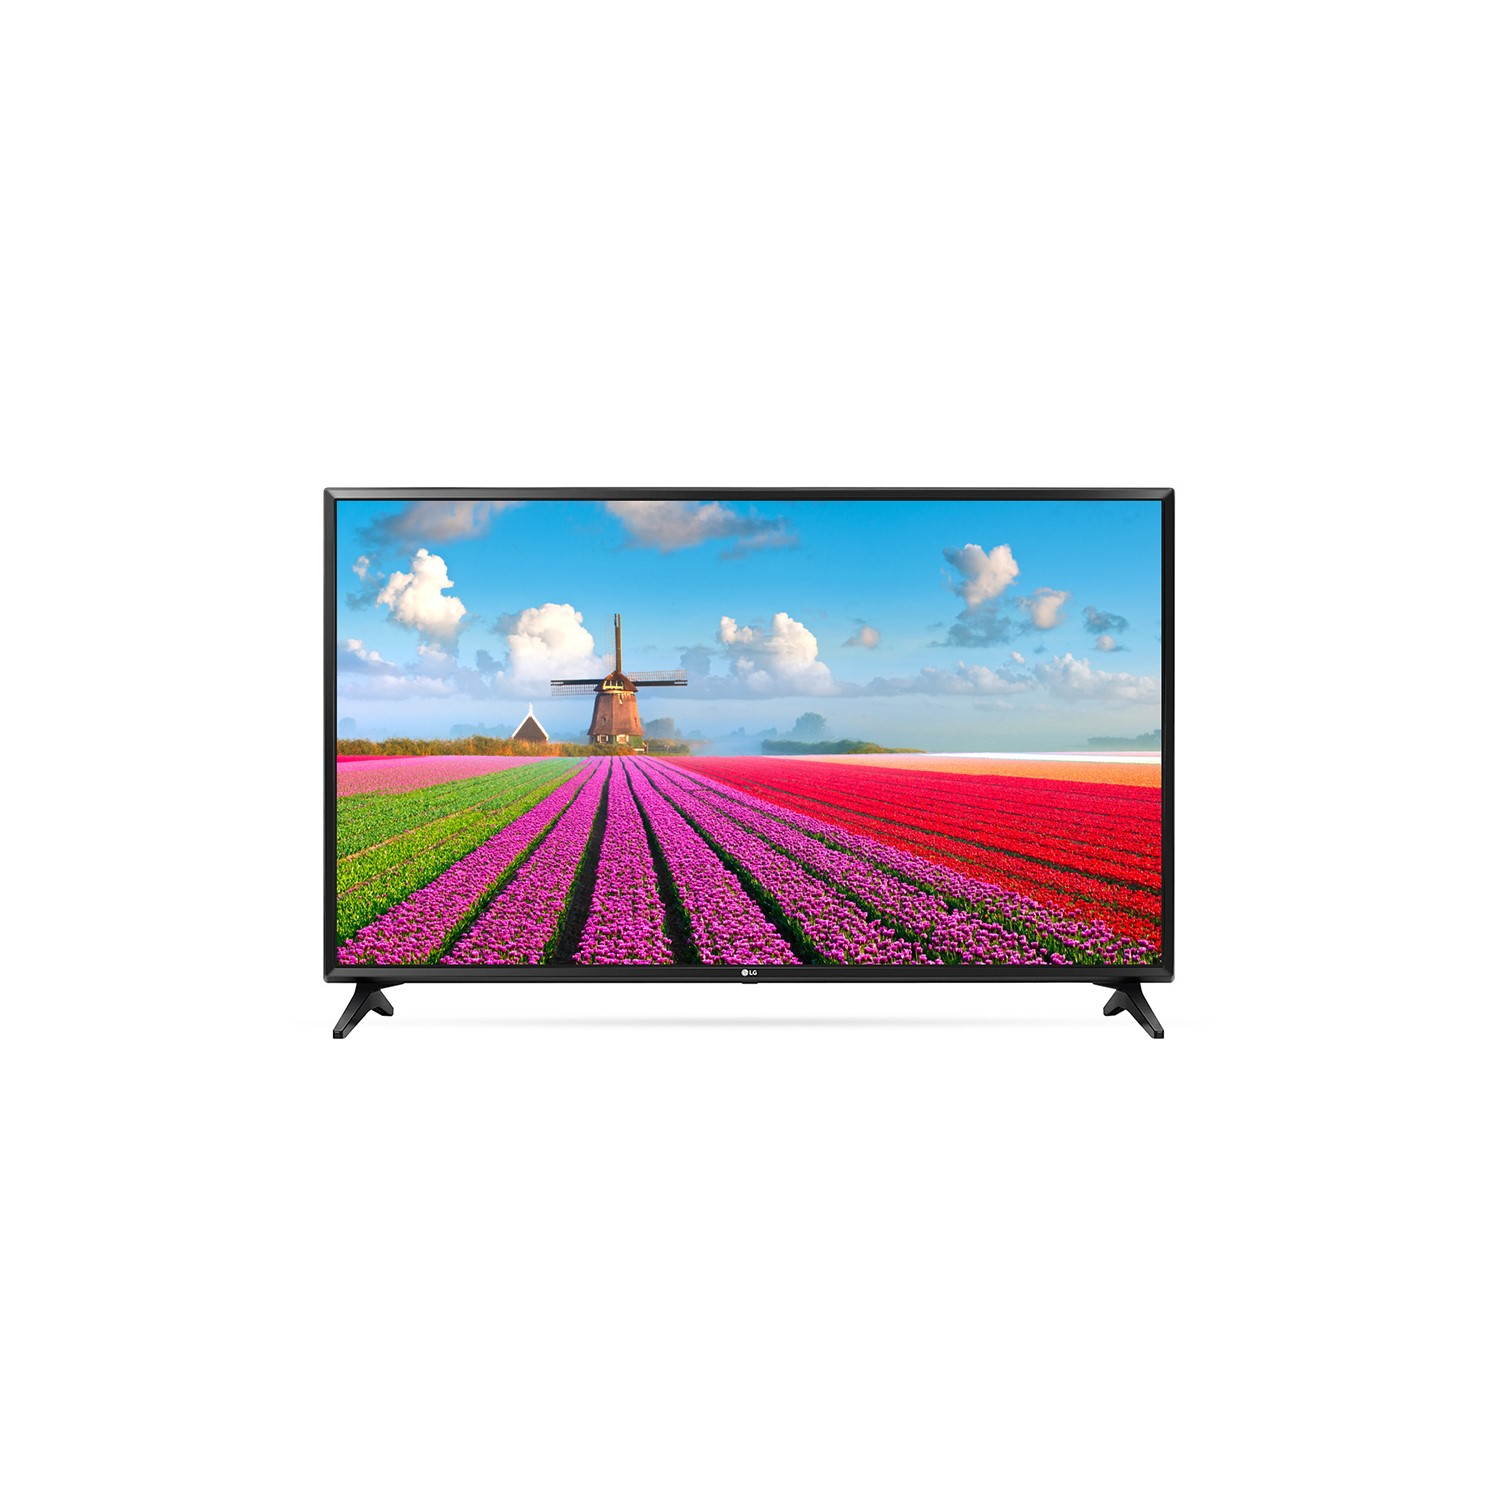 Lg 43lj594v 43 1080p Full Hd Led Smart Tv With Webos And Freeview Hd Appliances Direct